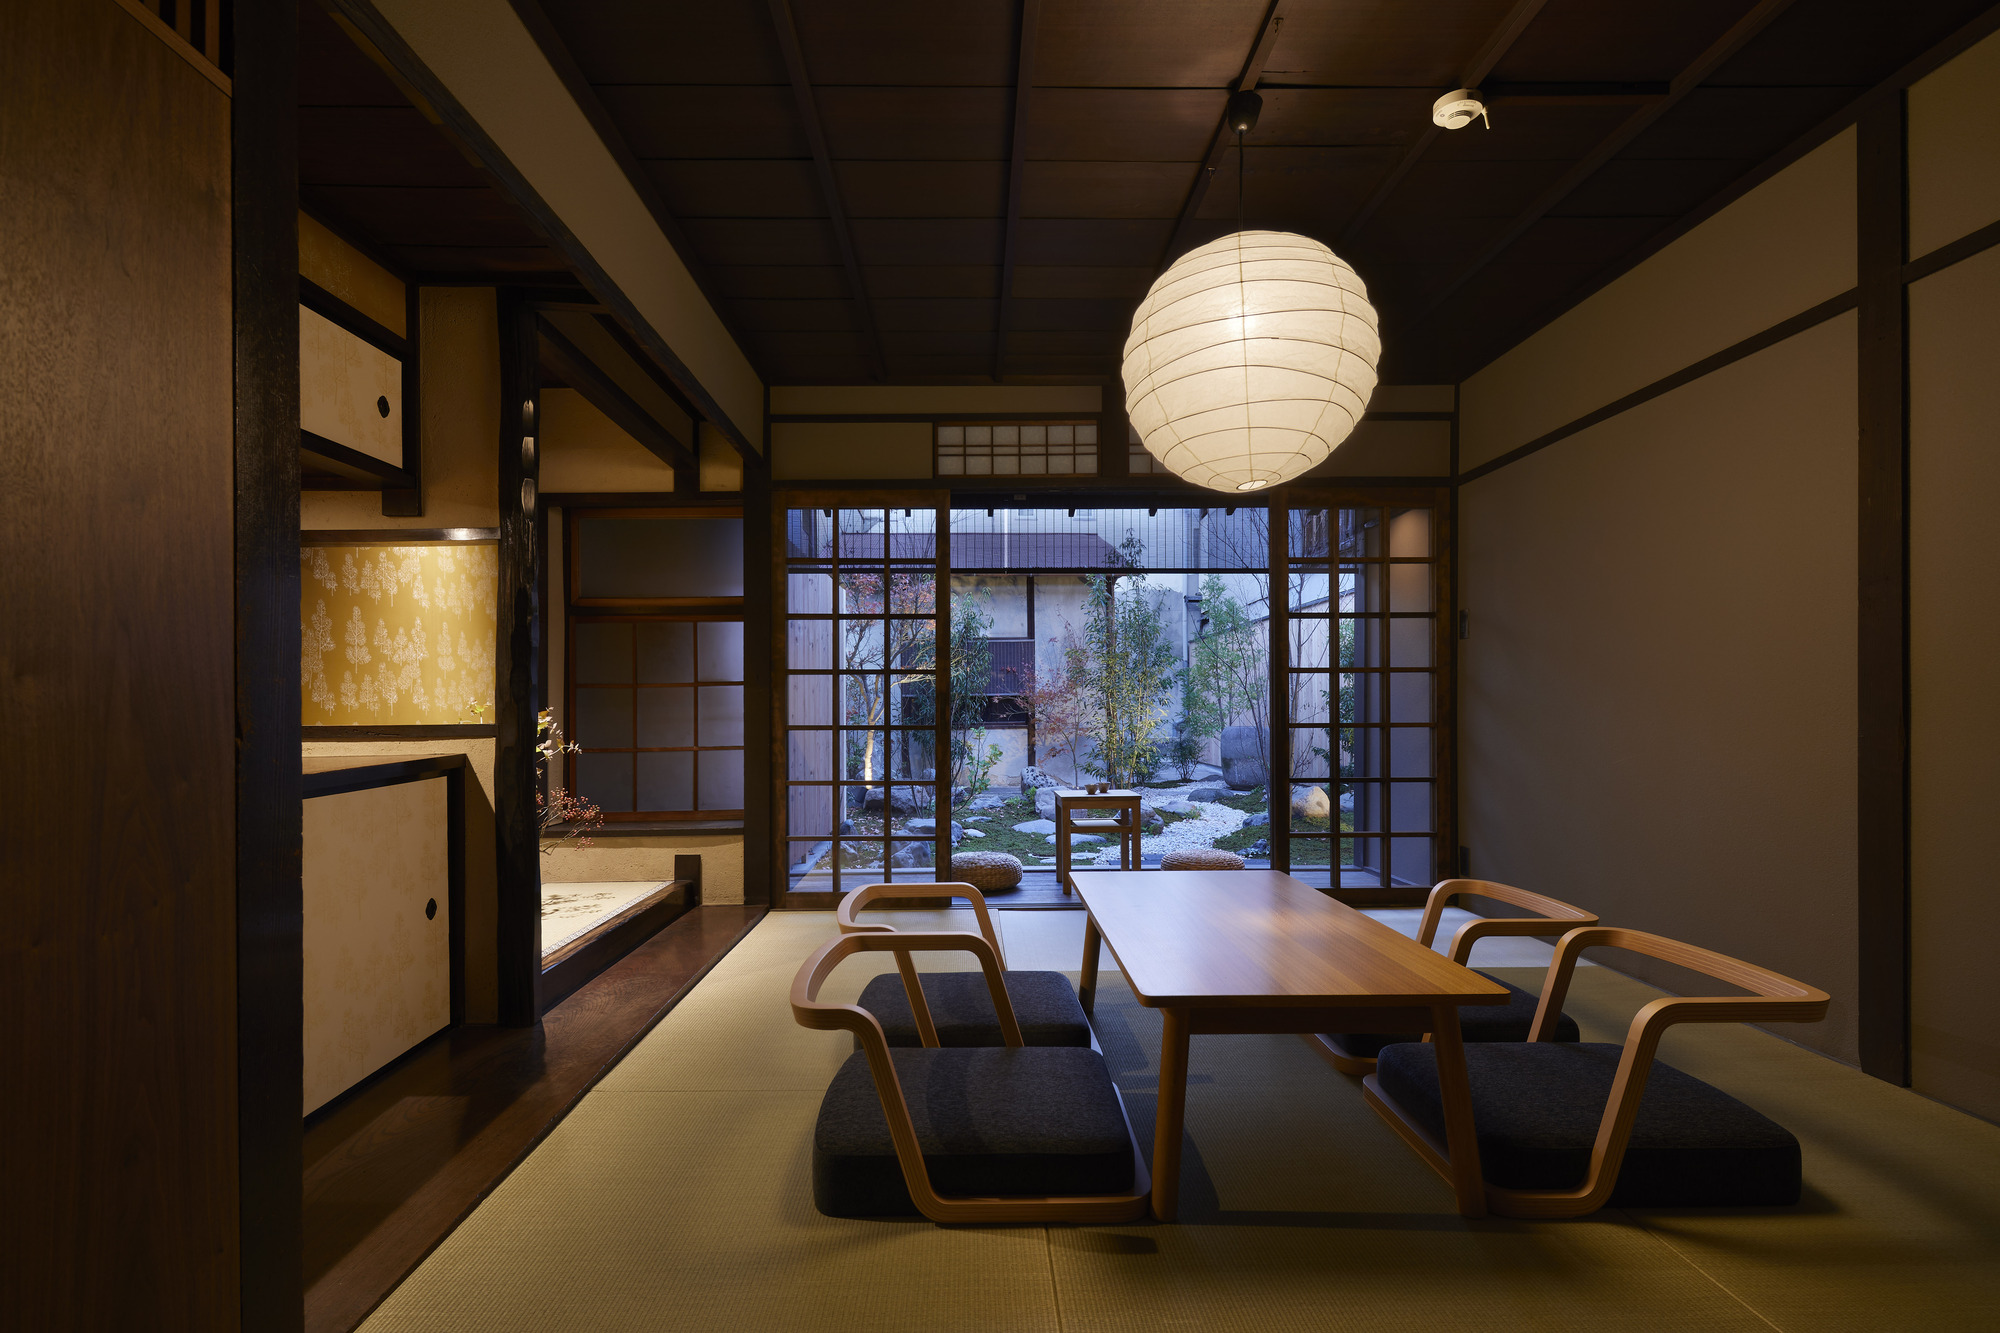 Guest House In Kyoto Blue Architecture Design Studio 2017 - Architecture-design-in-kyoto-japan